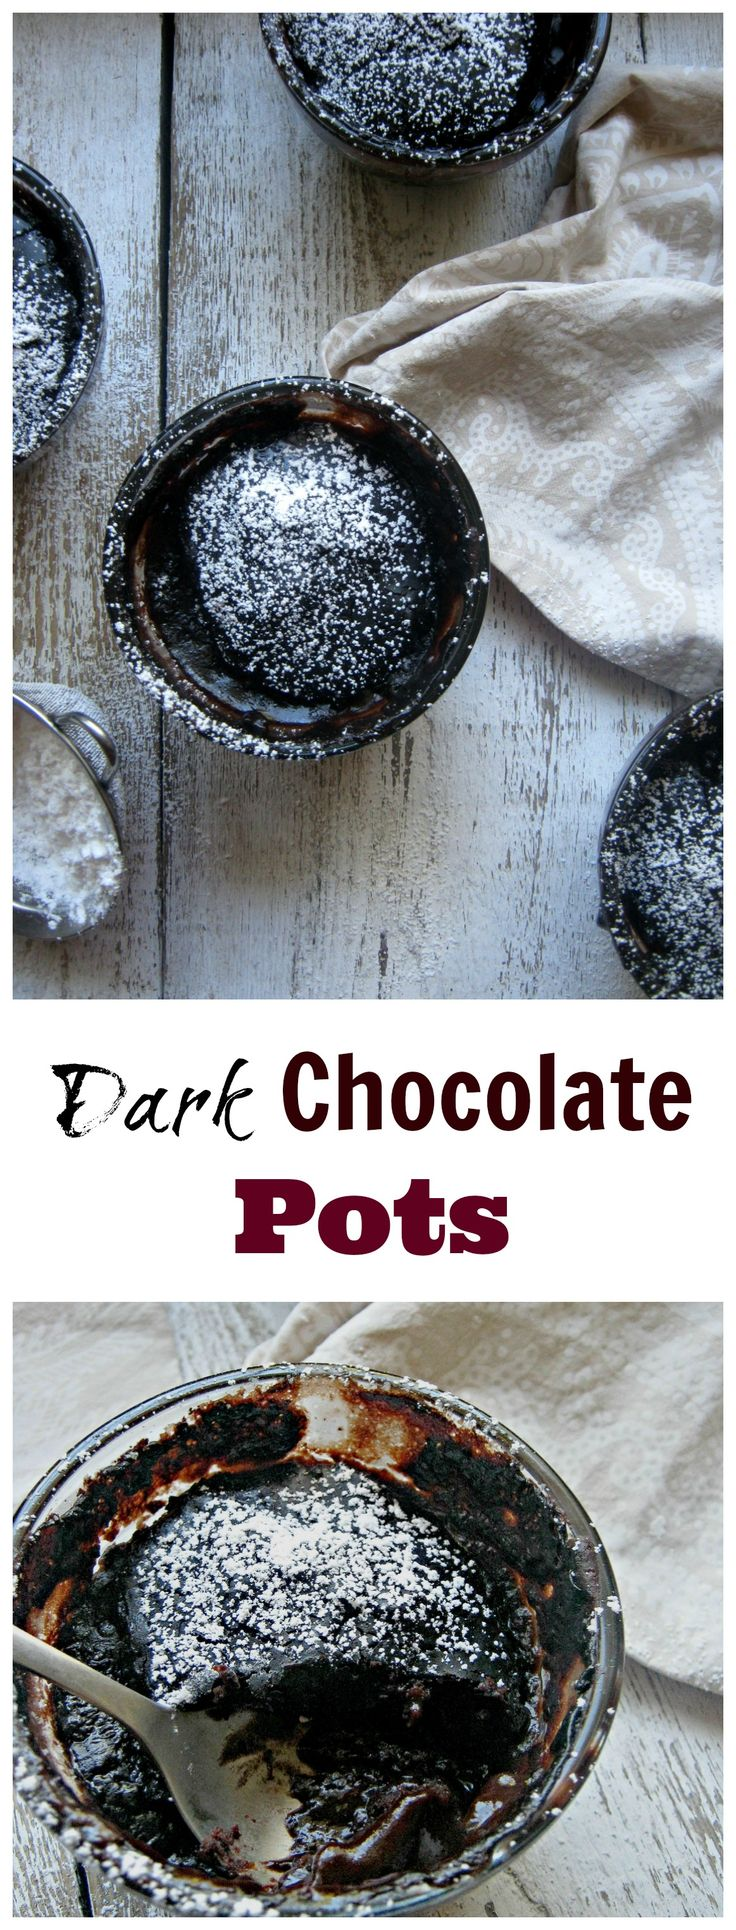 Dark Chocolate Pots http://www.juliascuisine.com/home/dark-chocolate-pots